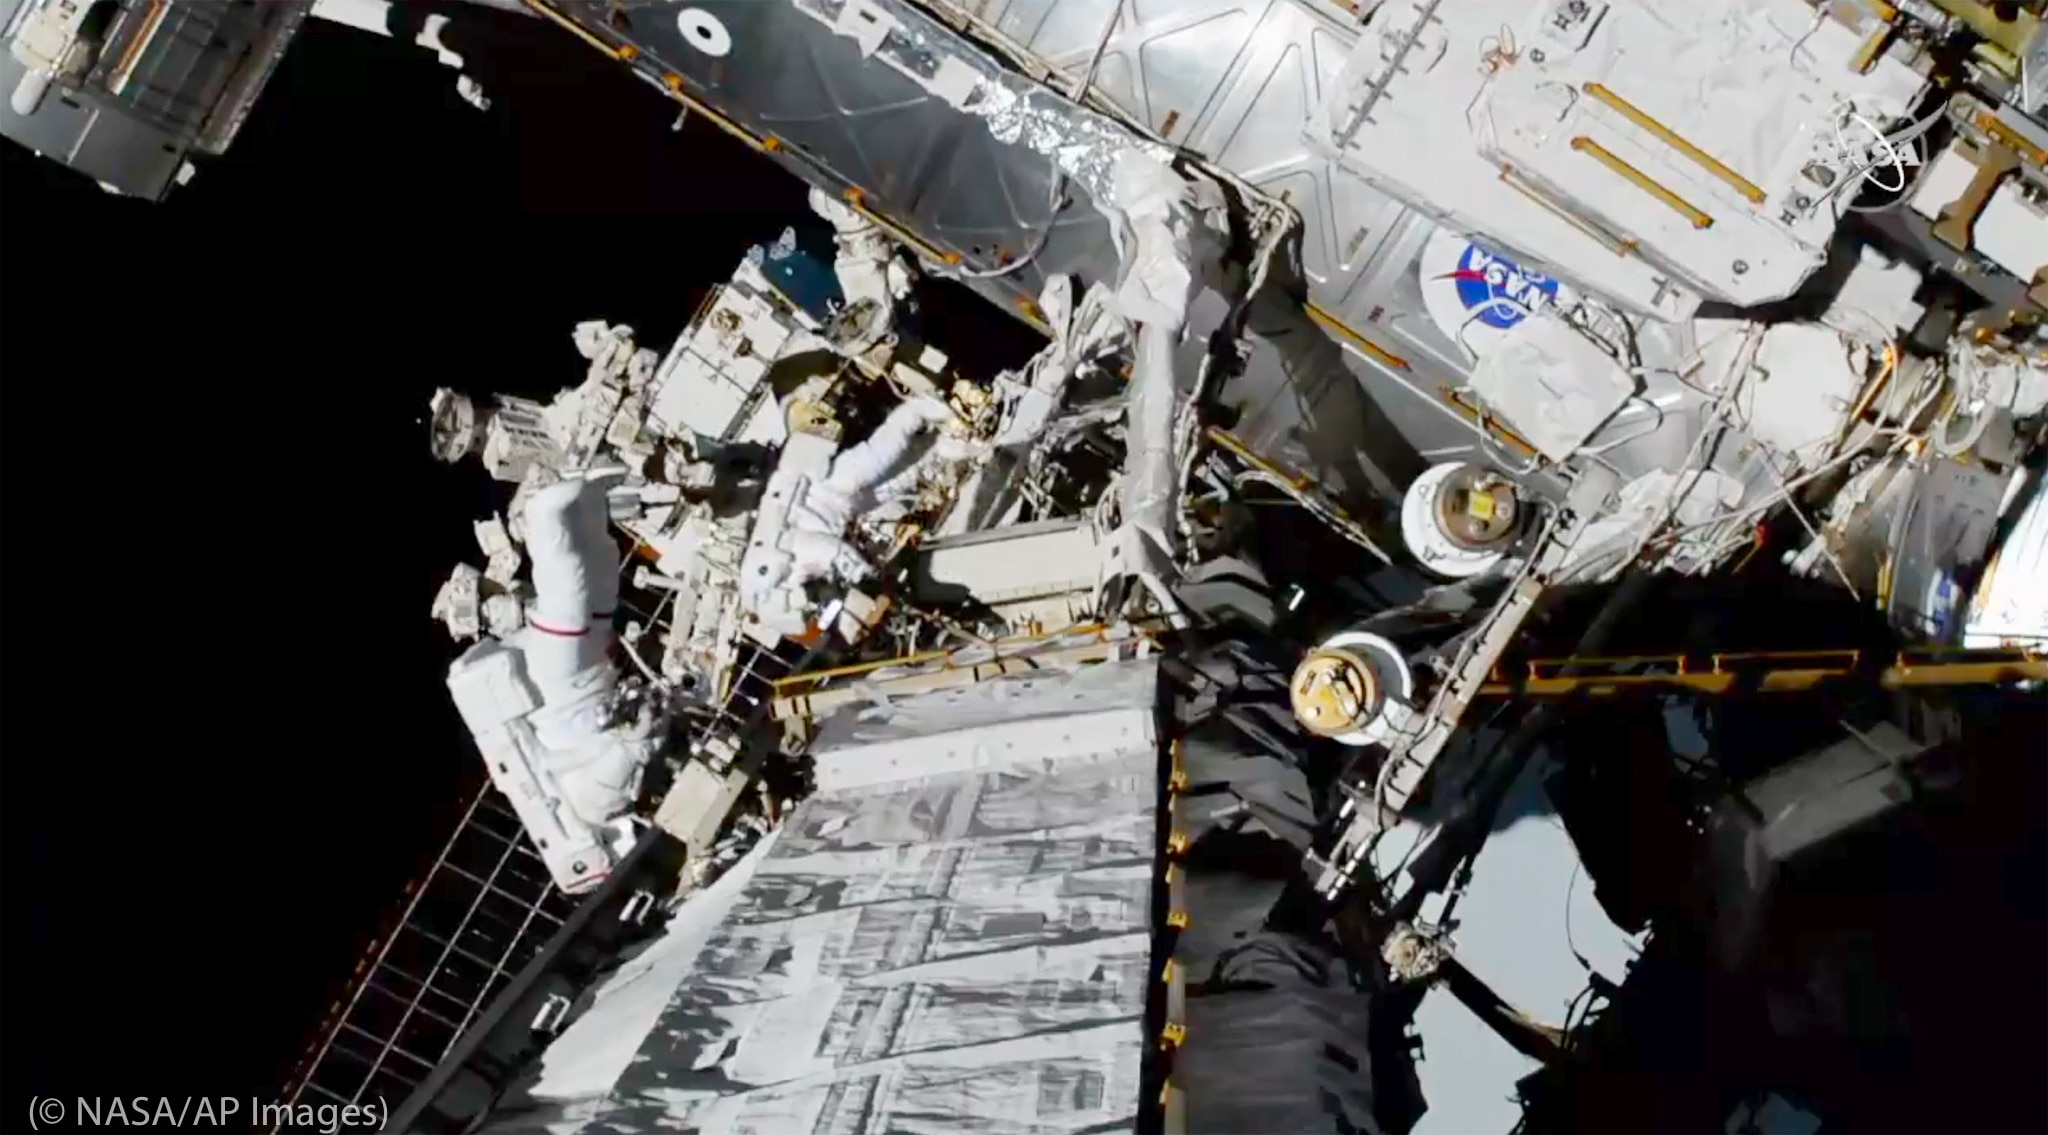 Astronauts exiting International Space Station (©NASA/AP Images)